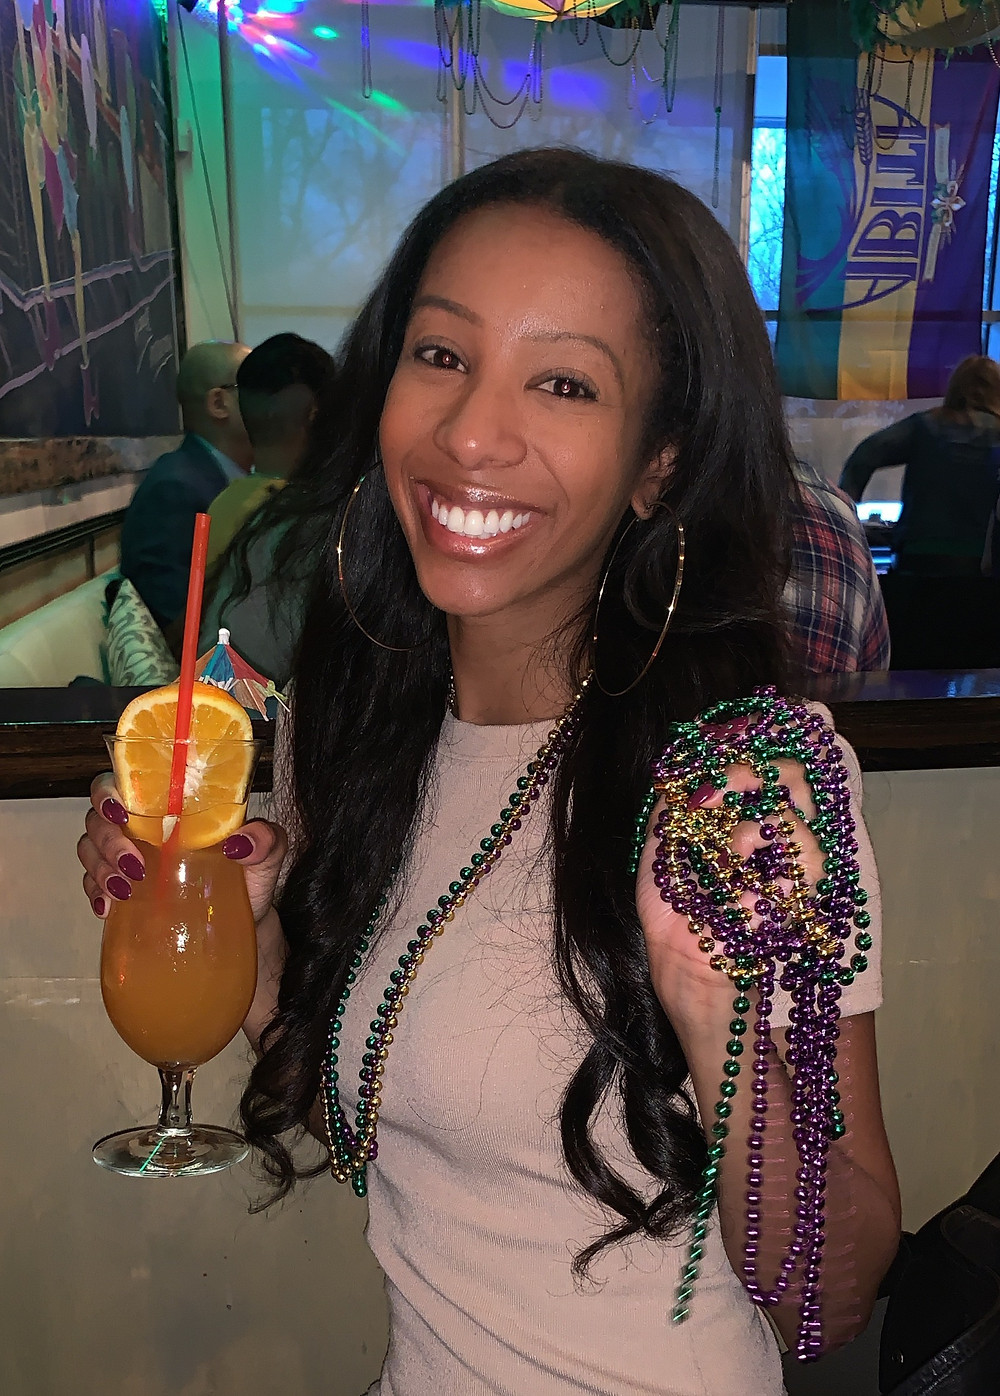 ShanMichele with a hurricane drink and Mardi Gras beads.